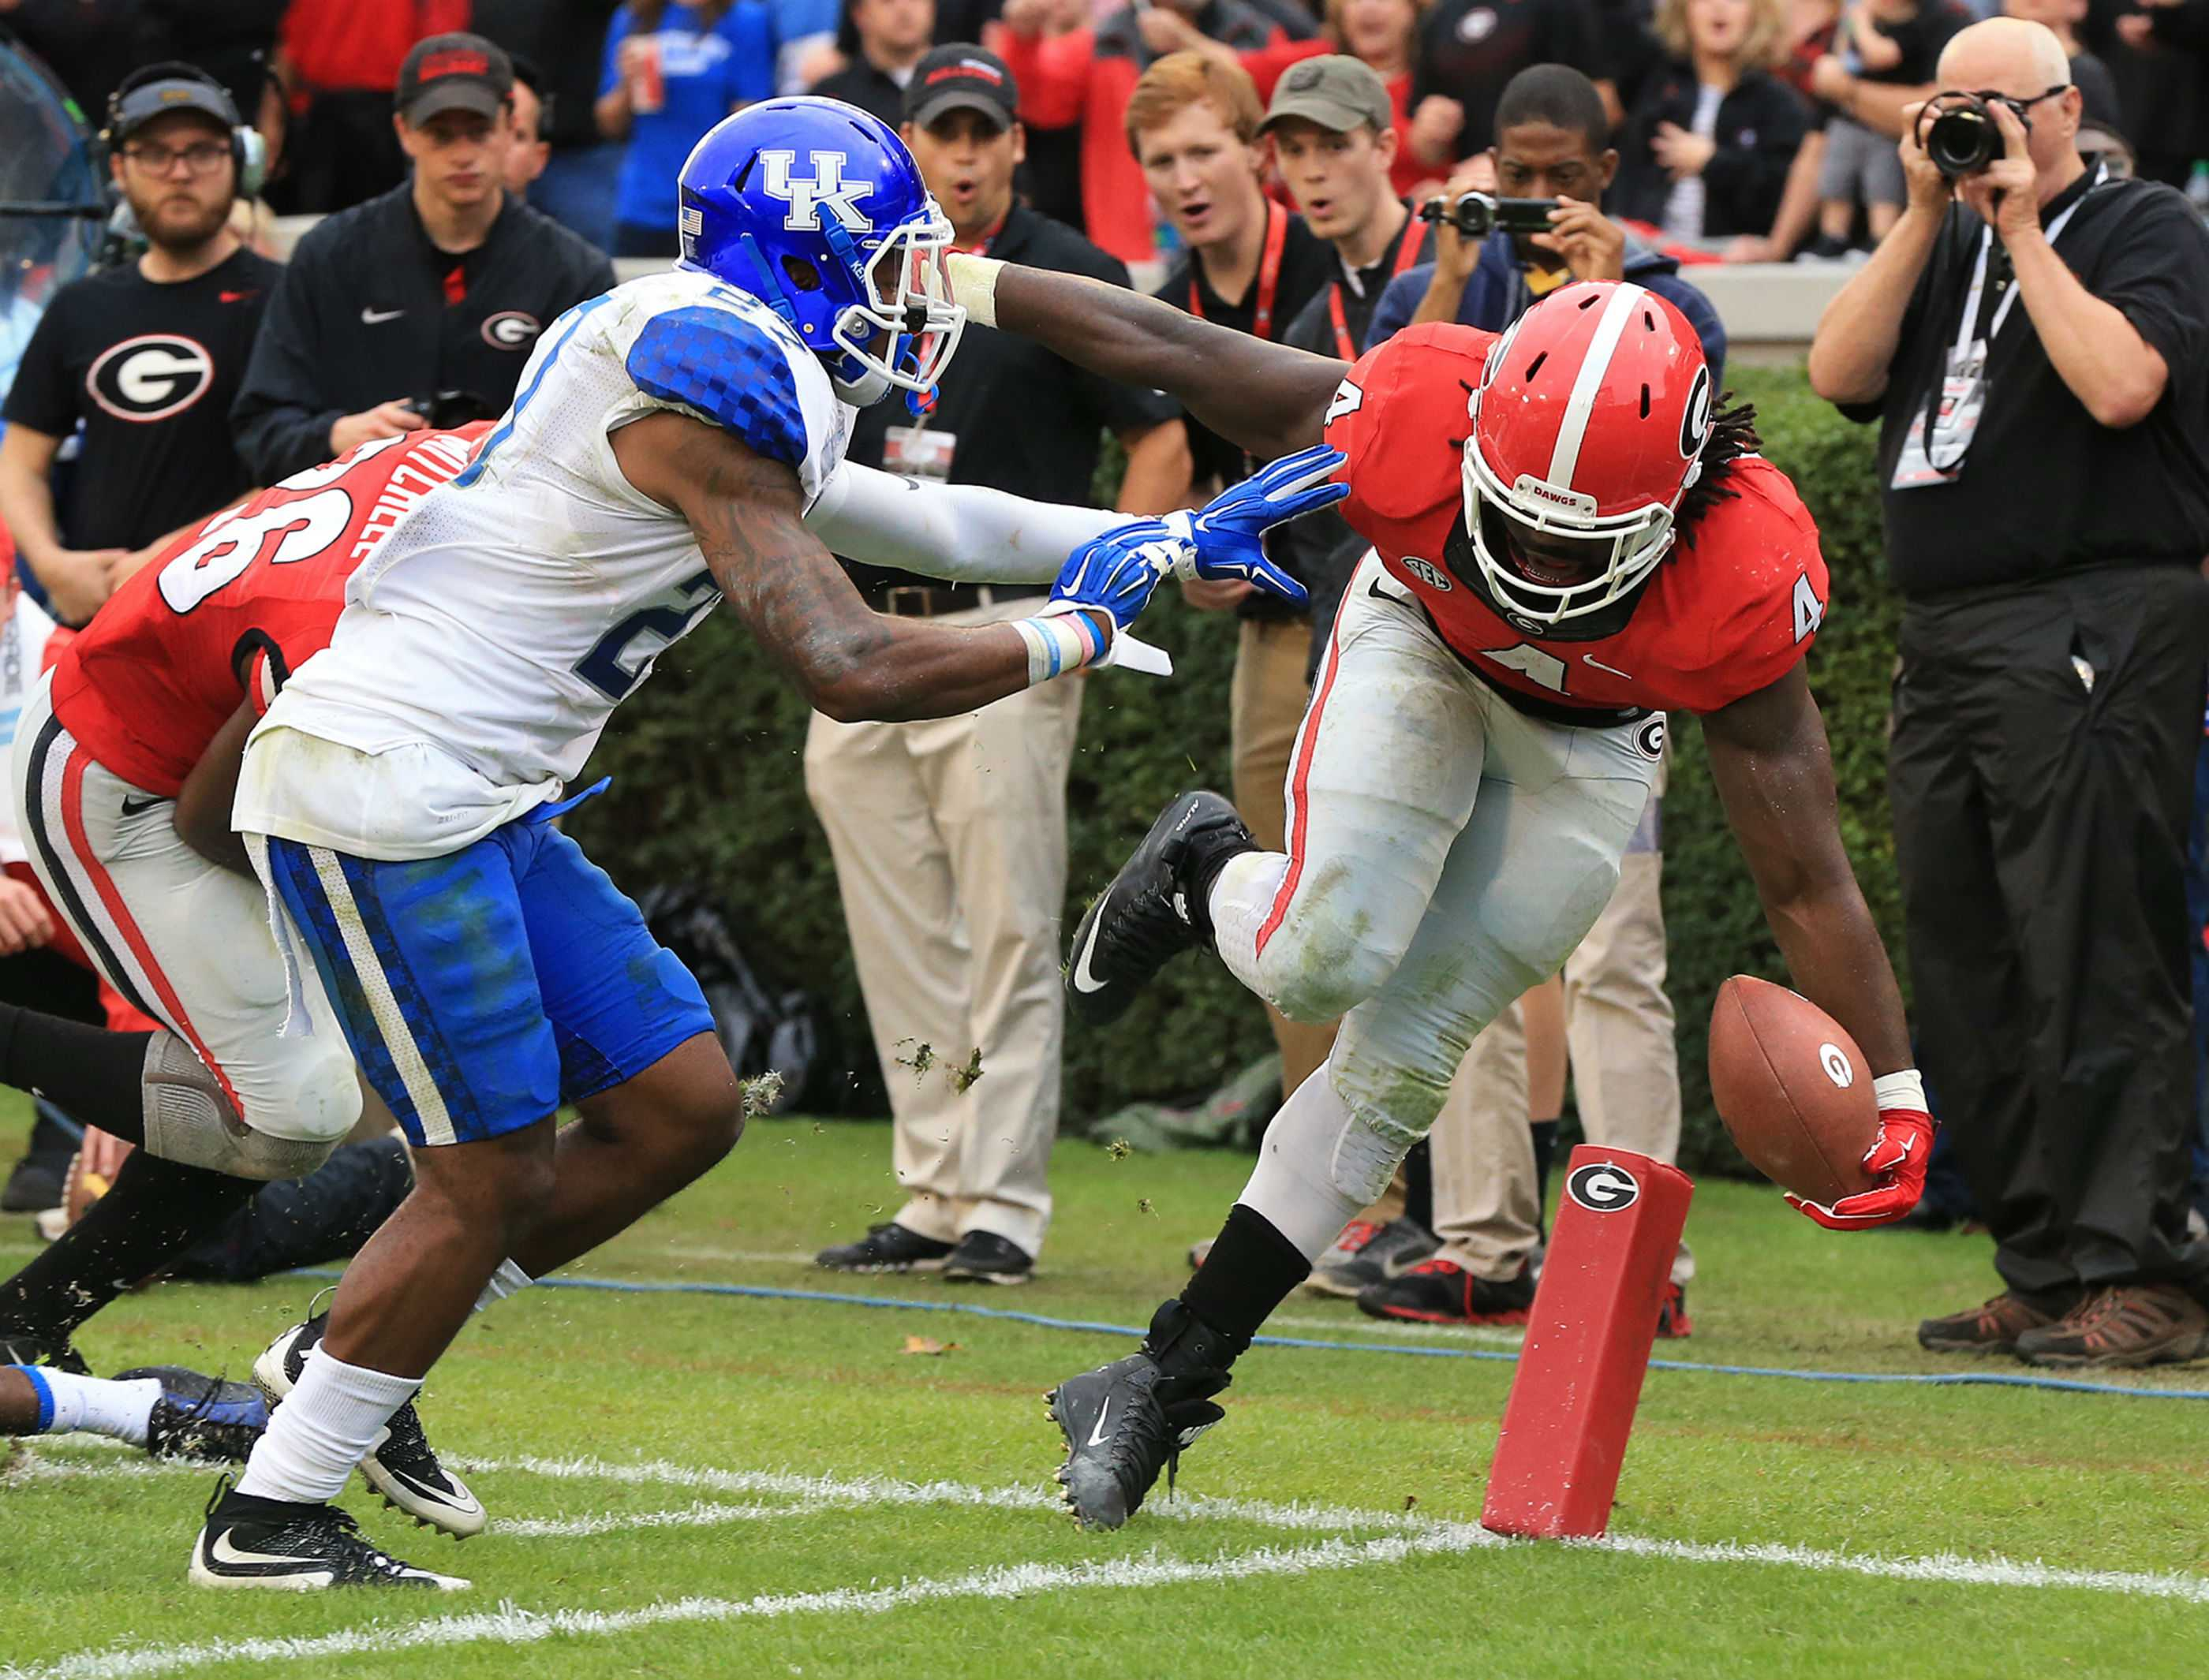 Georgia tailback Keith Marshall, right, just gets into the endzone past Kentucky defender Mike Edwards for a touchdown and a 24-3 lead during the third quarter on Saturday, Nov. 7, 2015, at Sanford Stadium in Athens, Ga. Georgia won, 27-3. (Curtis Compton/Atlanta Journal-Constitution/TNS)